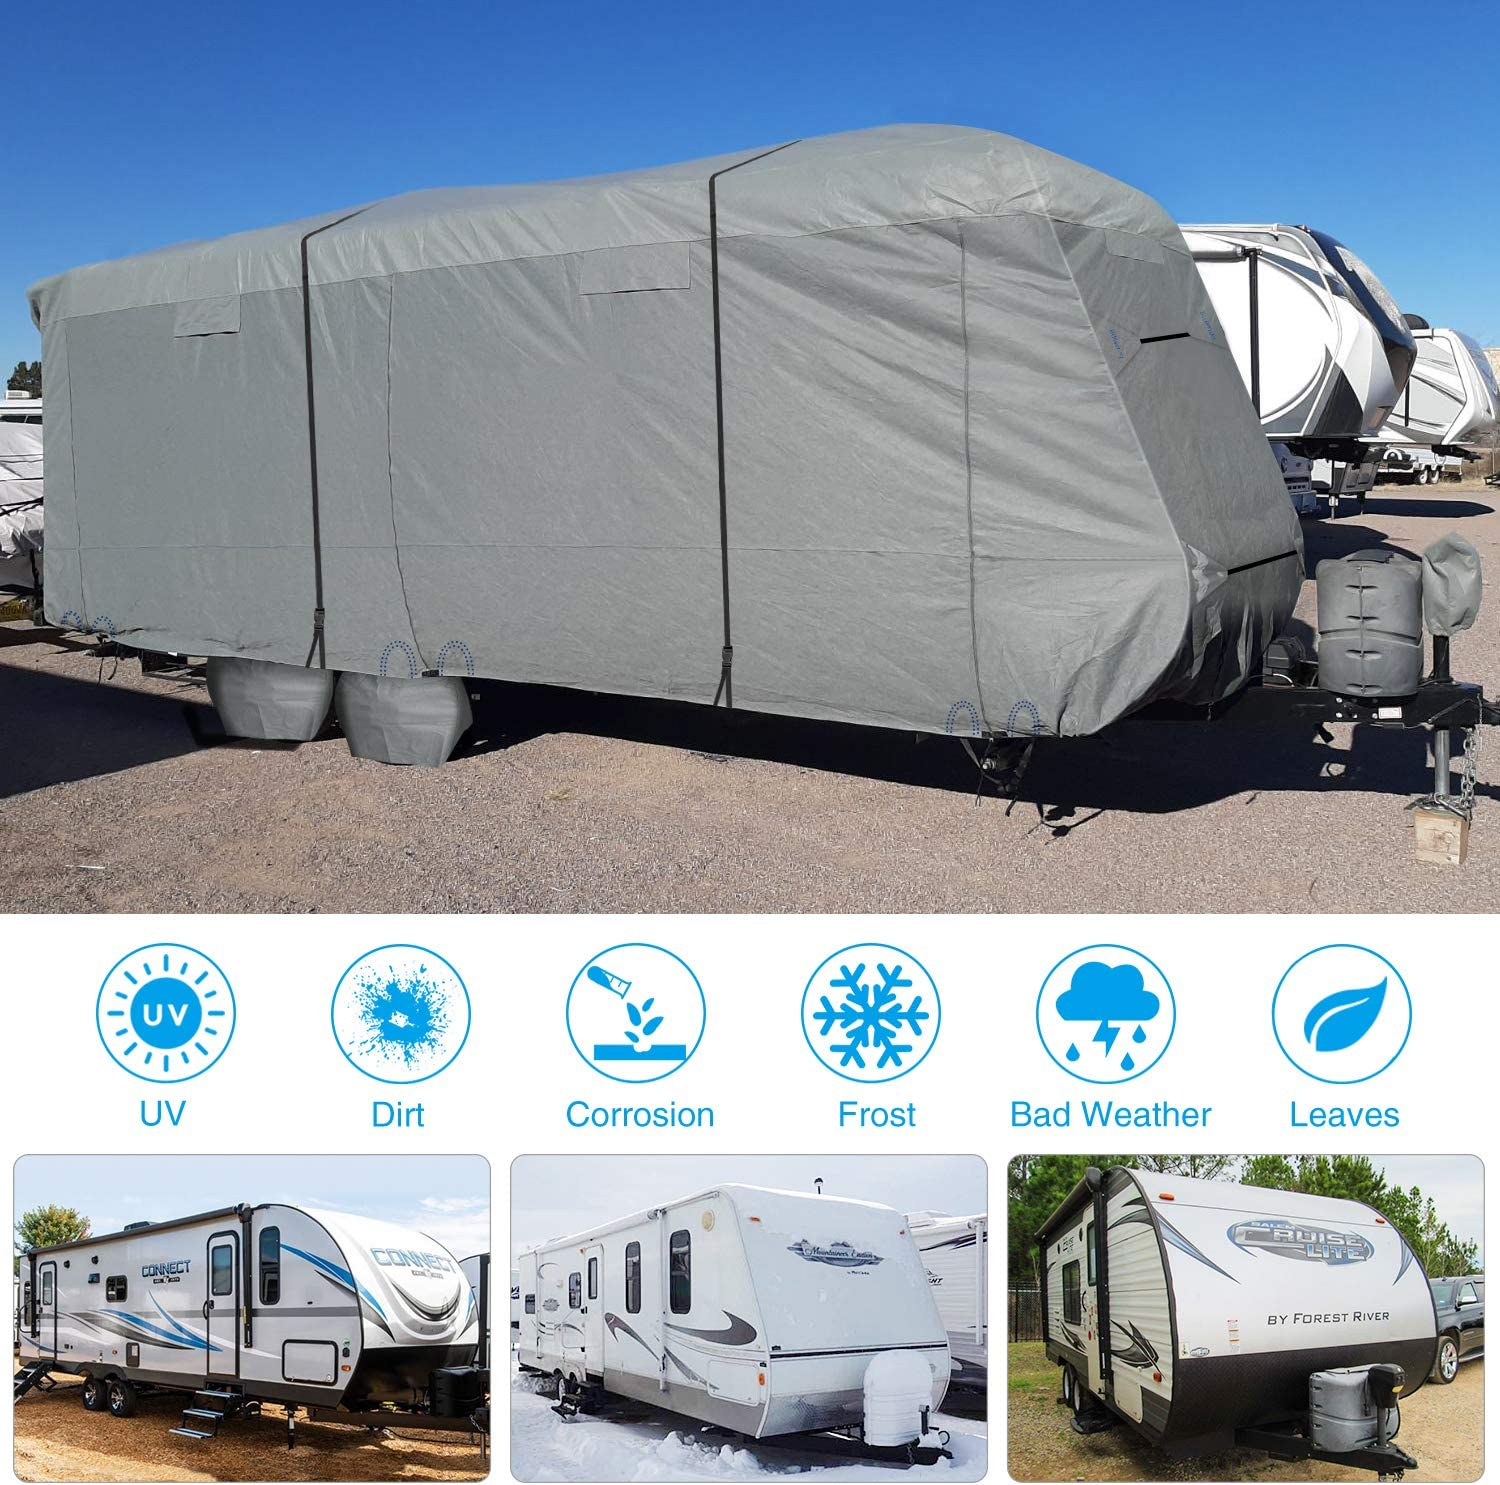 Tongue Jack Cover RVMasking Upgraded 6 Layers Top Travel Trailer RV Cover Waterproof Camper Cover for 201-22 RV Prevent Top Tearing Caused by Sun Exposure with 4 Tire Covers 2 Straps